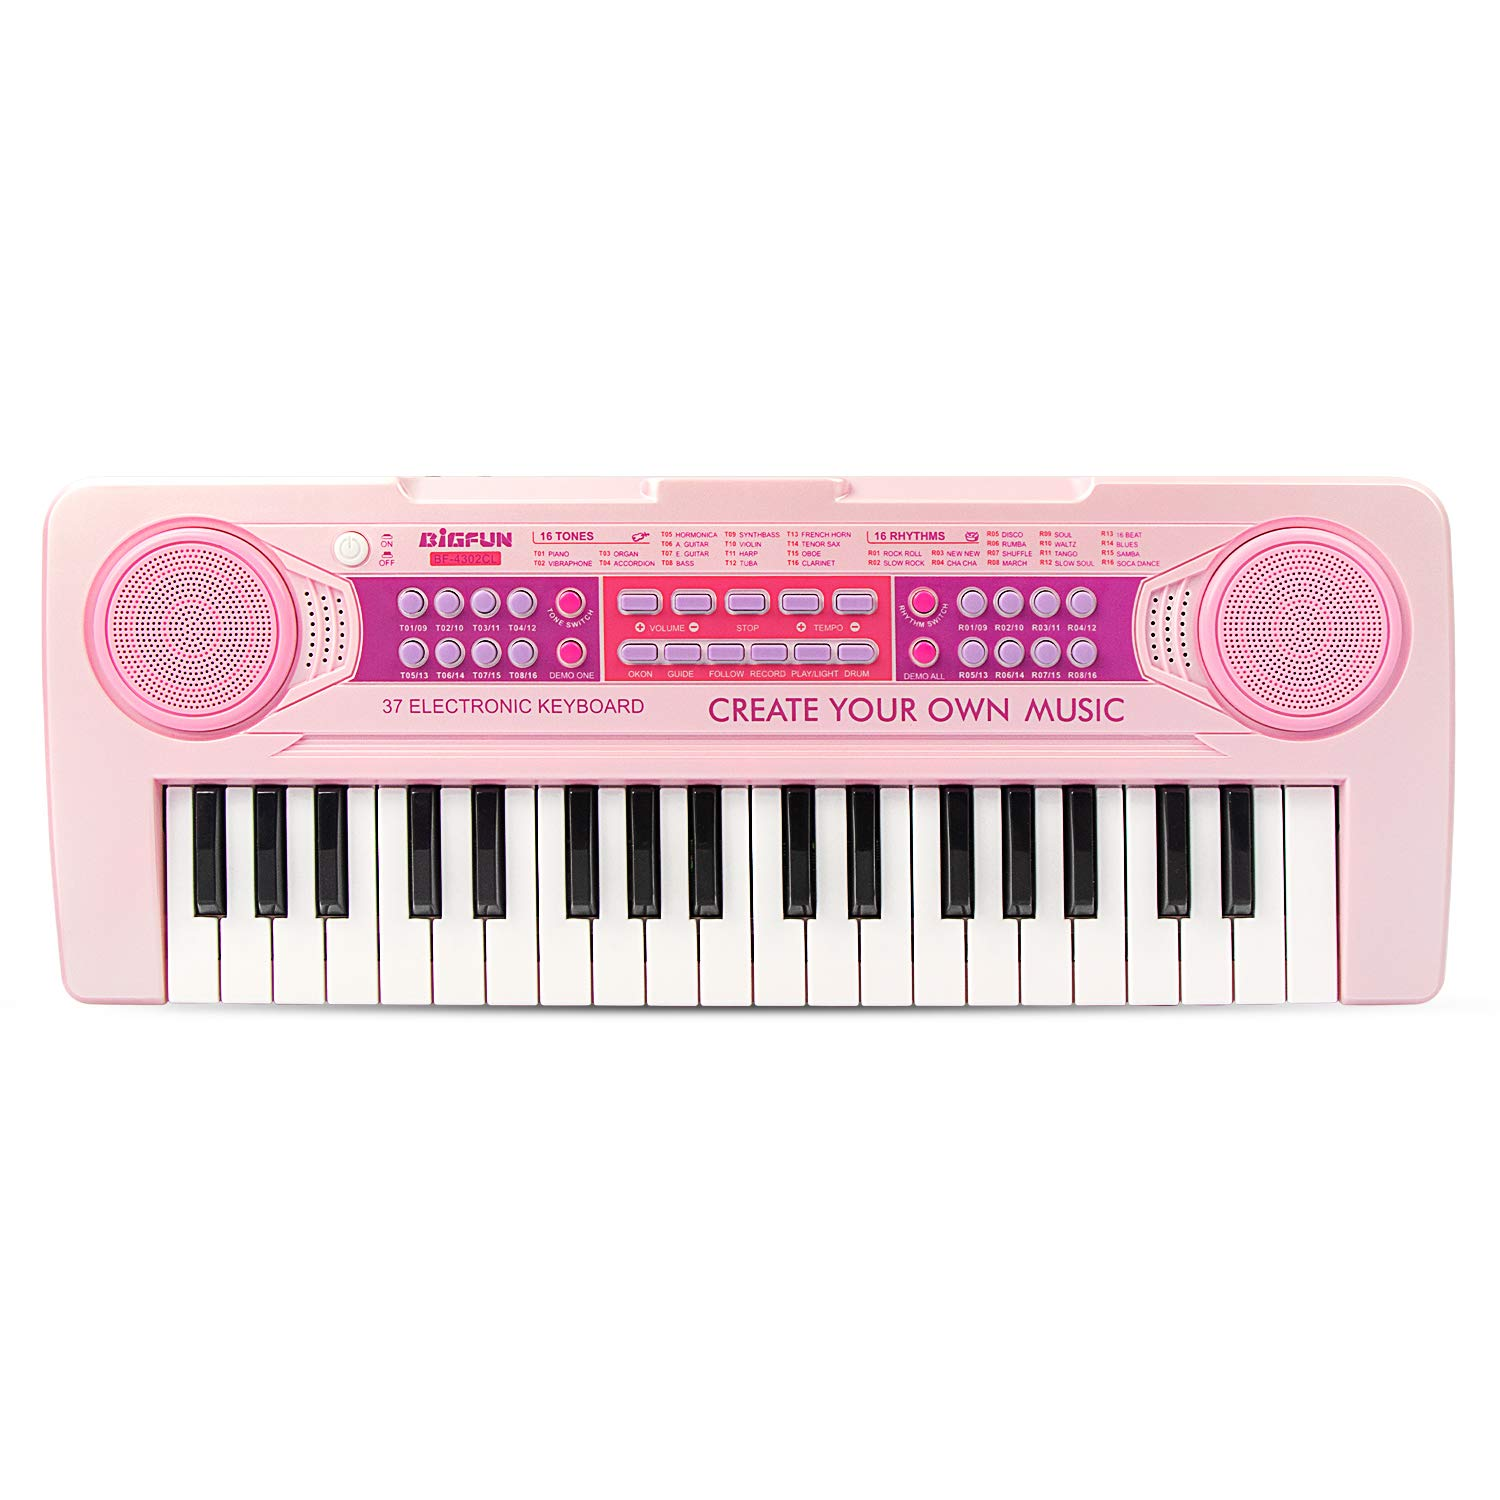 BIGFUN 37 Keys Multifunction Recharging Portable Electronic Kids Piano Musical Teaching Keyboard for Kids Children Early Learning Educational Toy with Double Speakers (Pink)